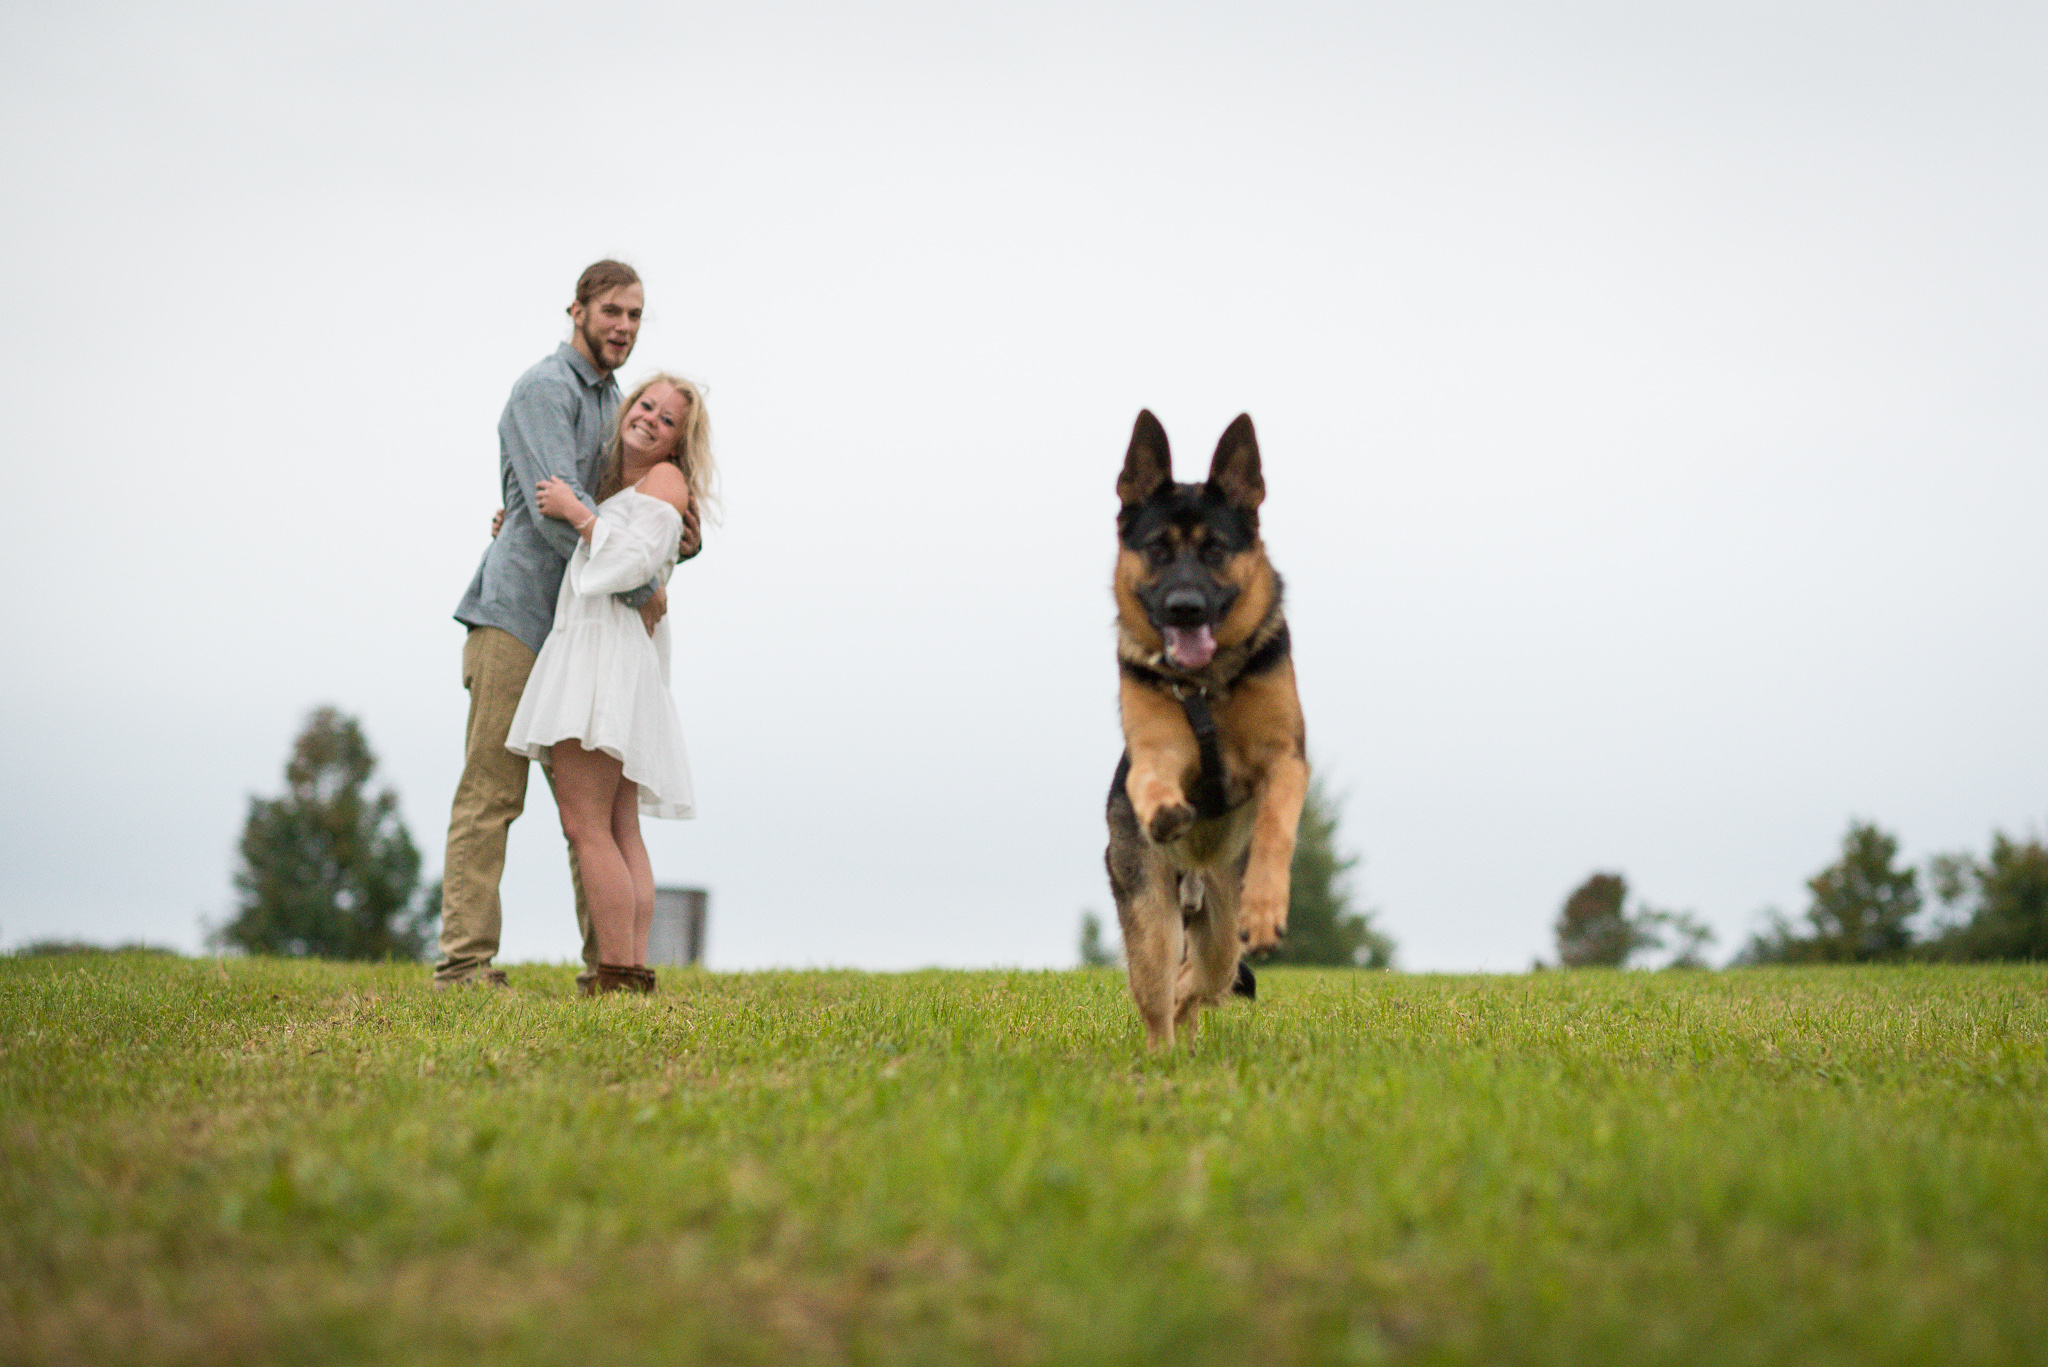 Elk-mountain-wedding-engagement-photography-uniondale-susquehanna-county-steven-serge-photography-29.jpg